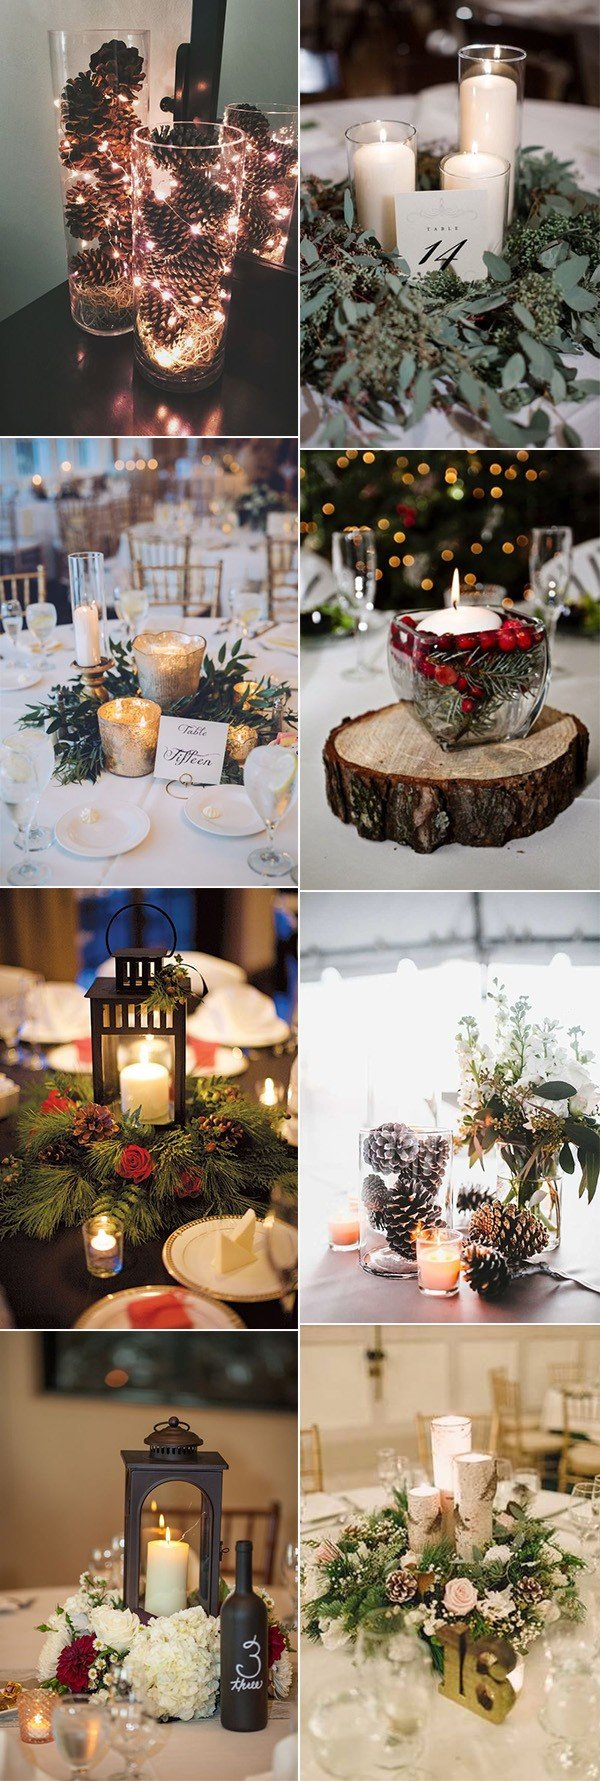 romantic winter wedding centerpiece ideas for 2017